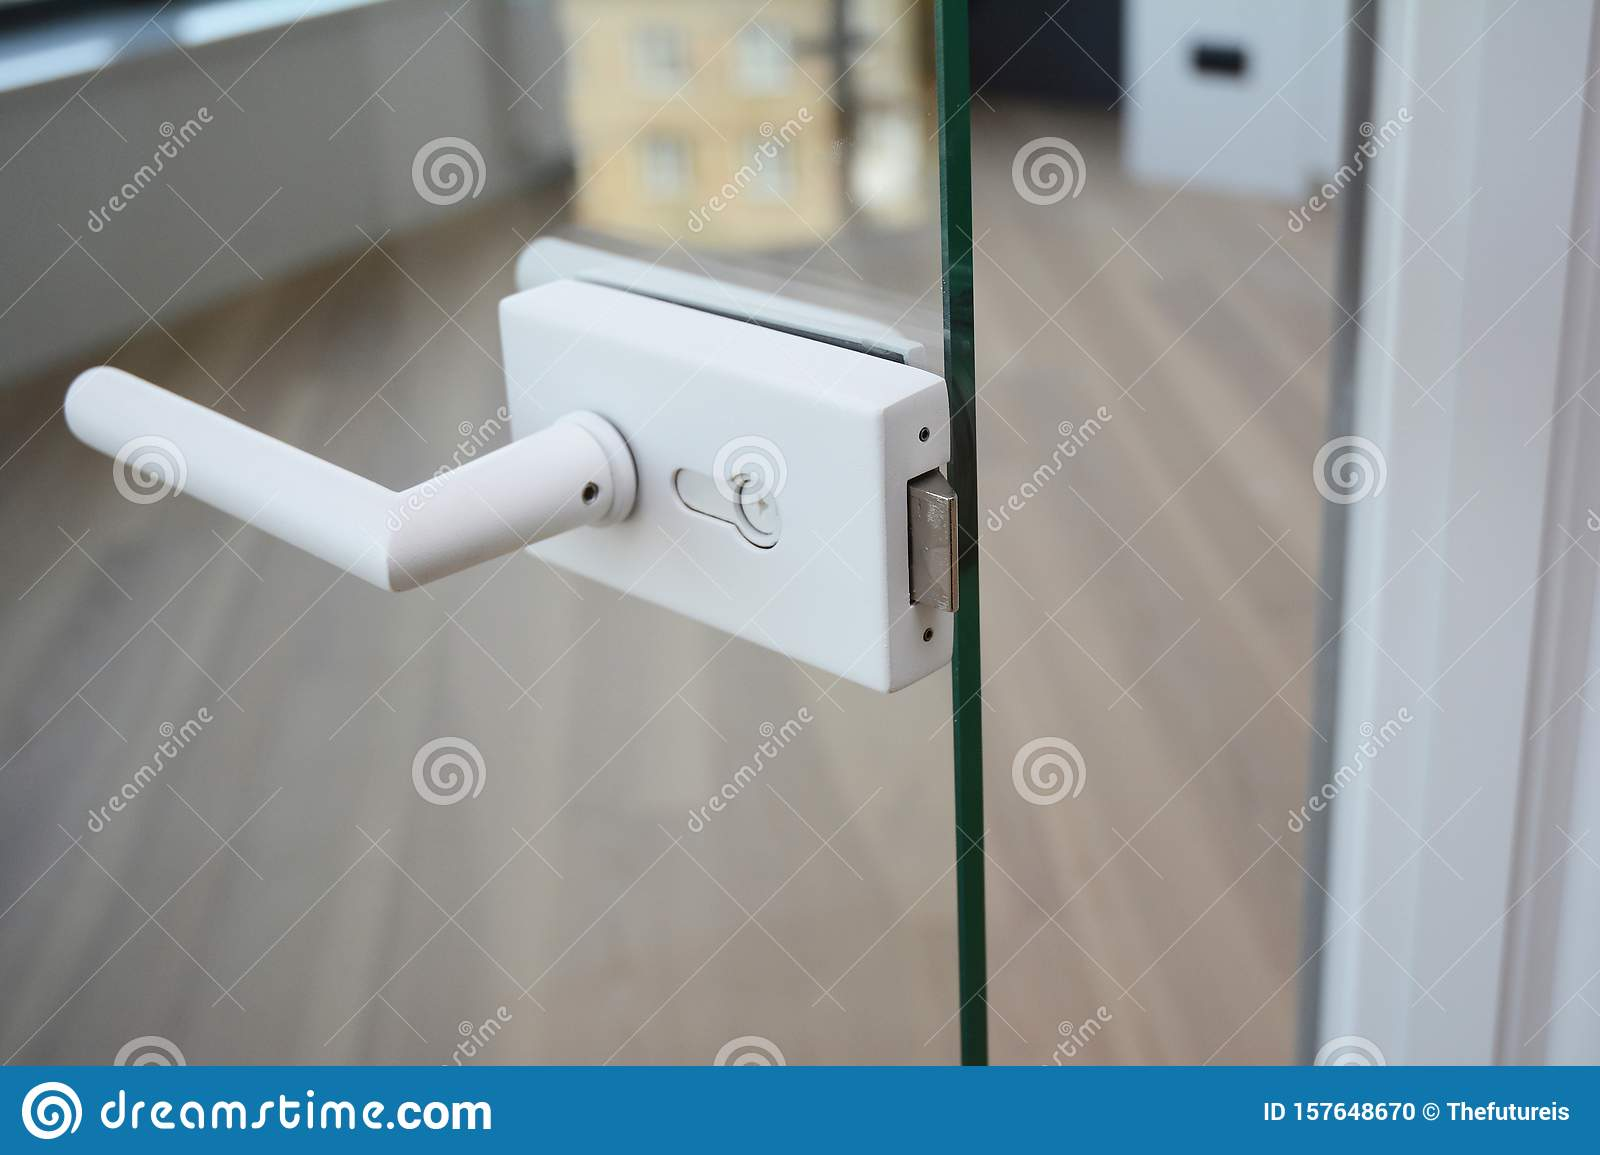 White Knob With Handle In Open Glass Door Modern Room Stock Photo Image Of Lock Knob 157648670